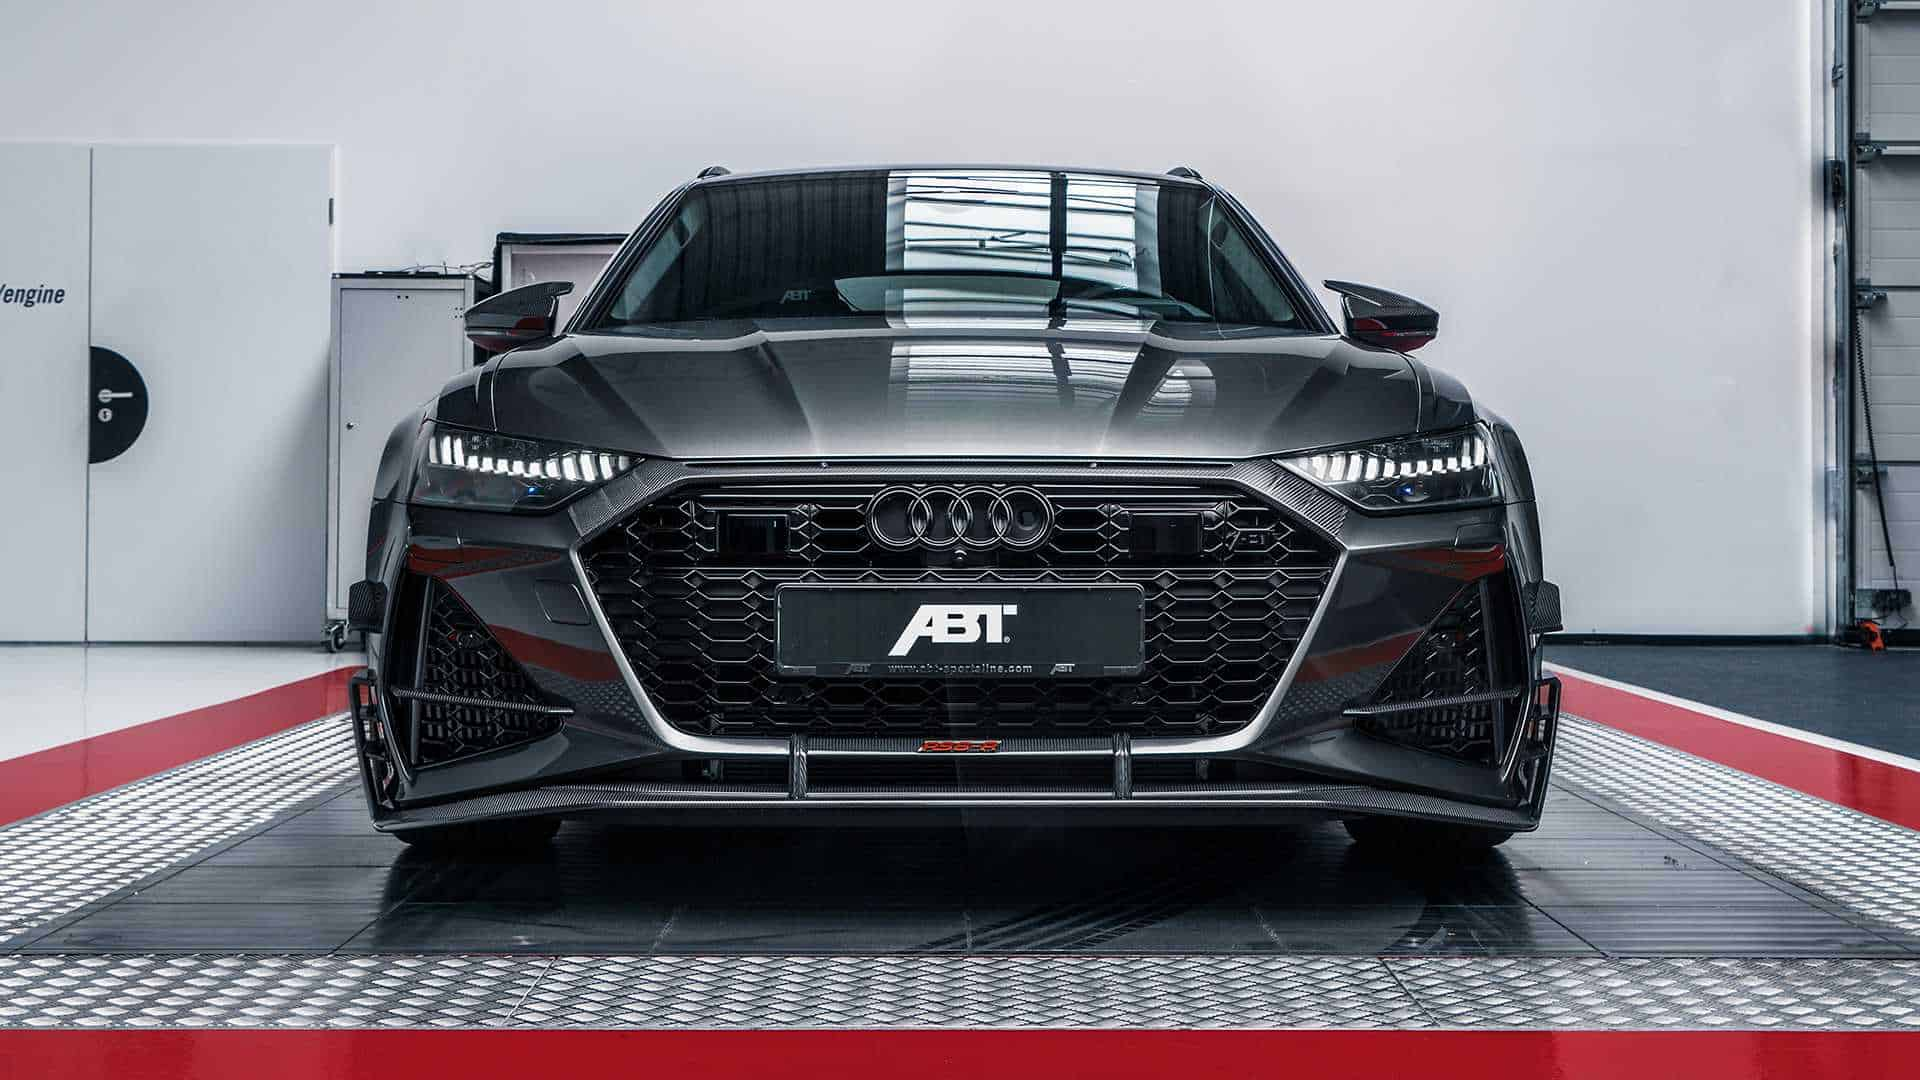 ABT Audi RS6-R with 740hp